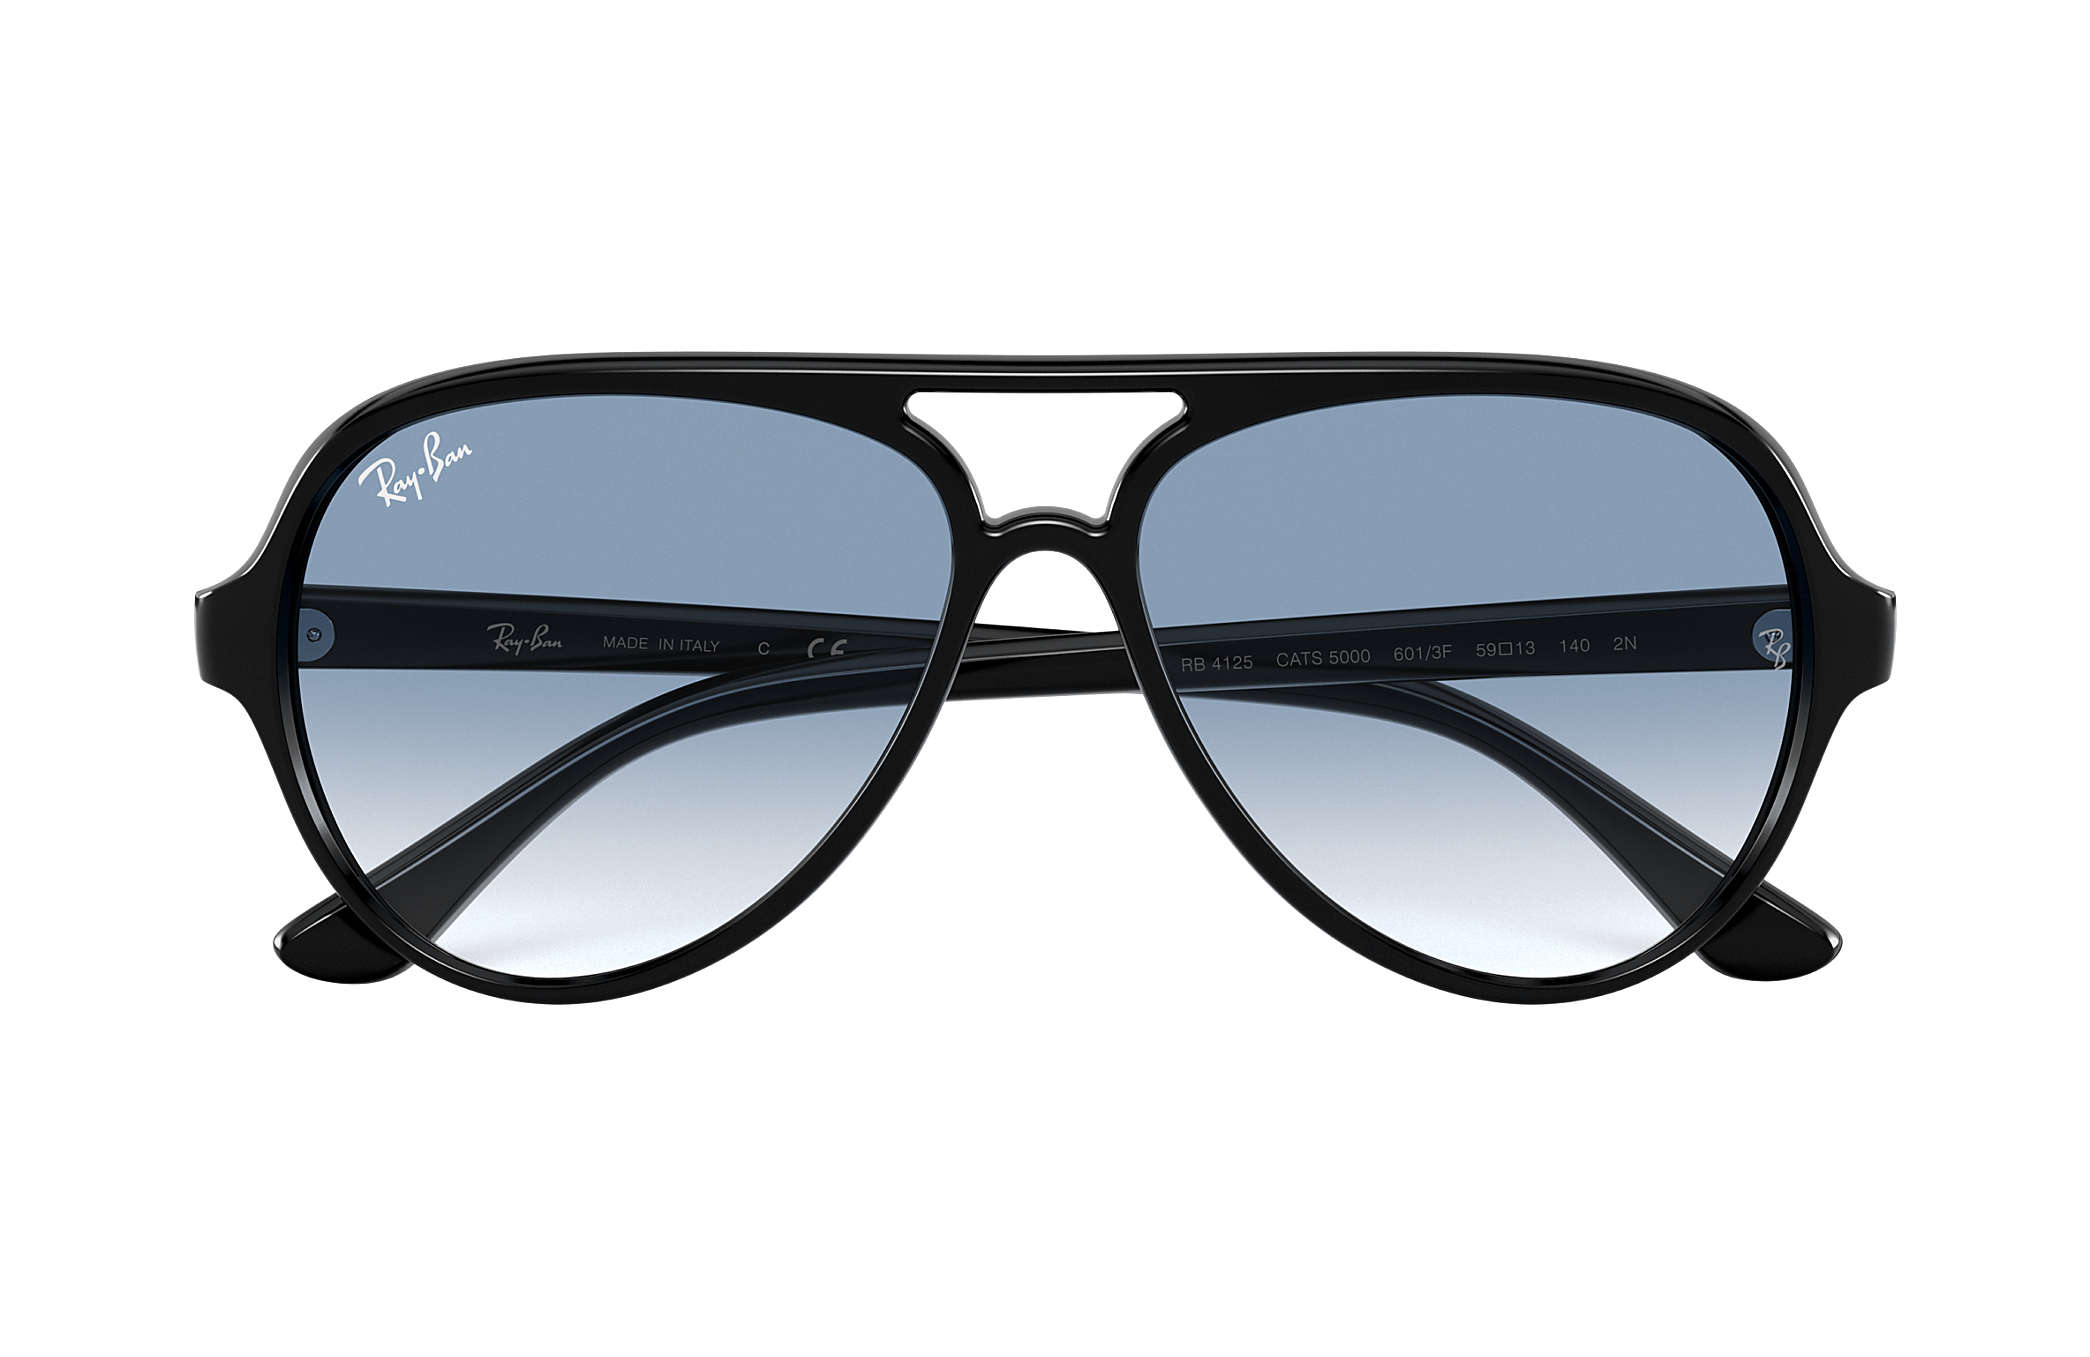 8233705f9826f6 Ray-Ban Cats 5000 Classic RB4125 Black - Injected - Light Blue ...